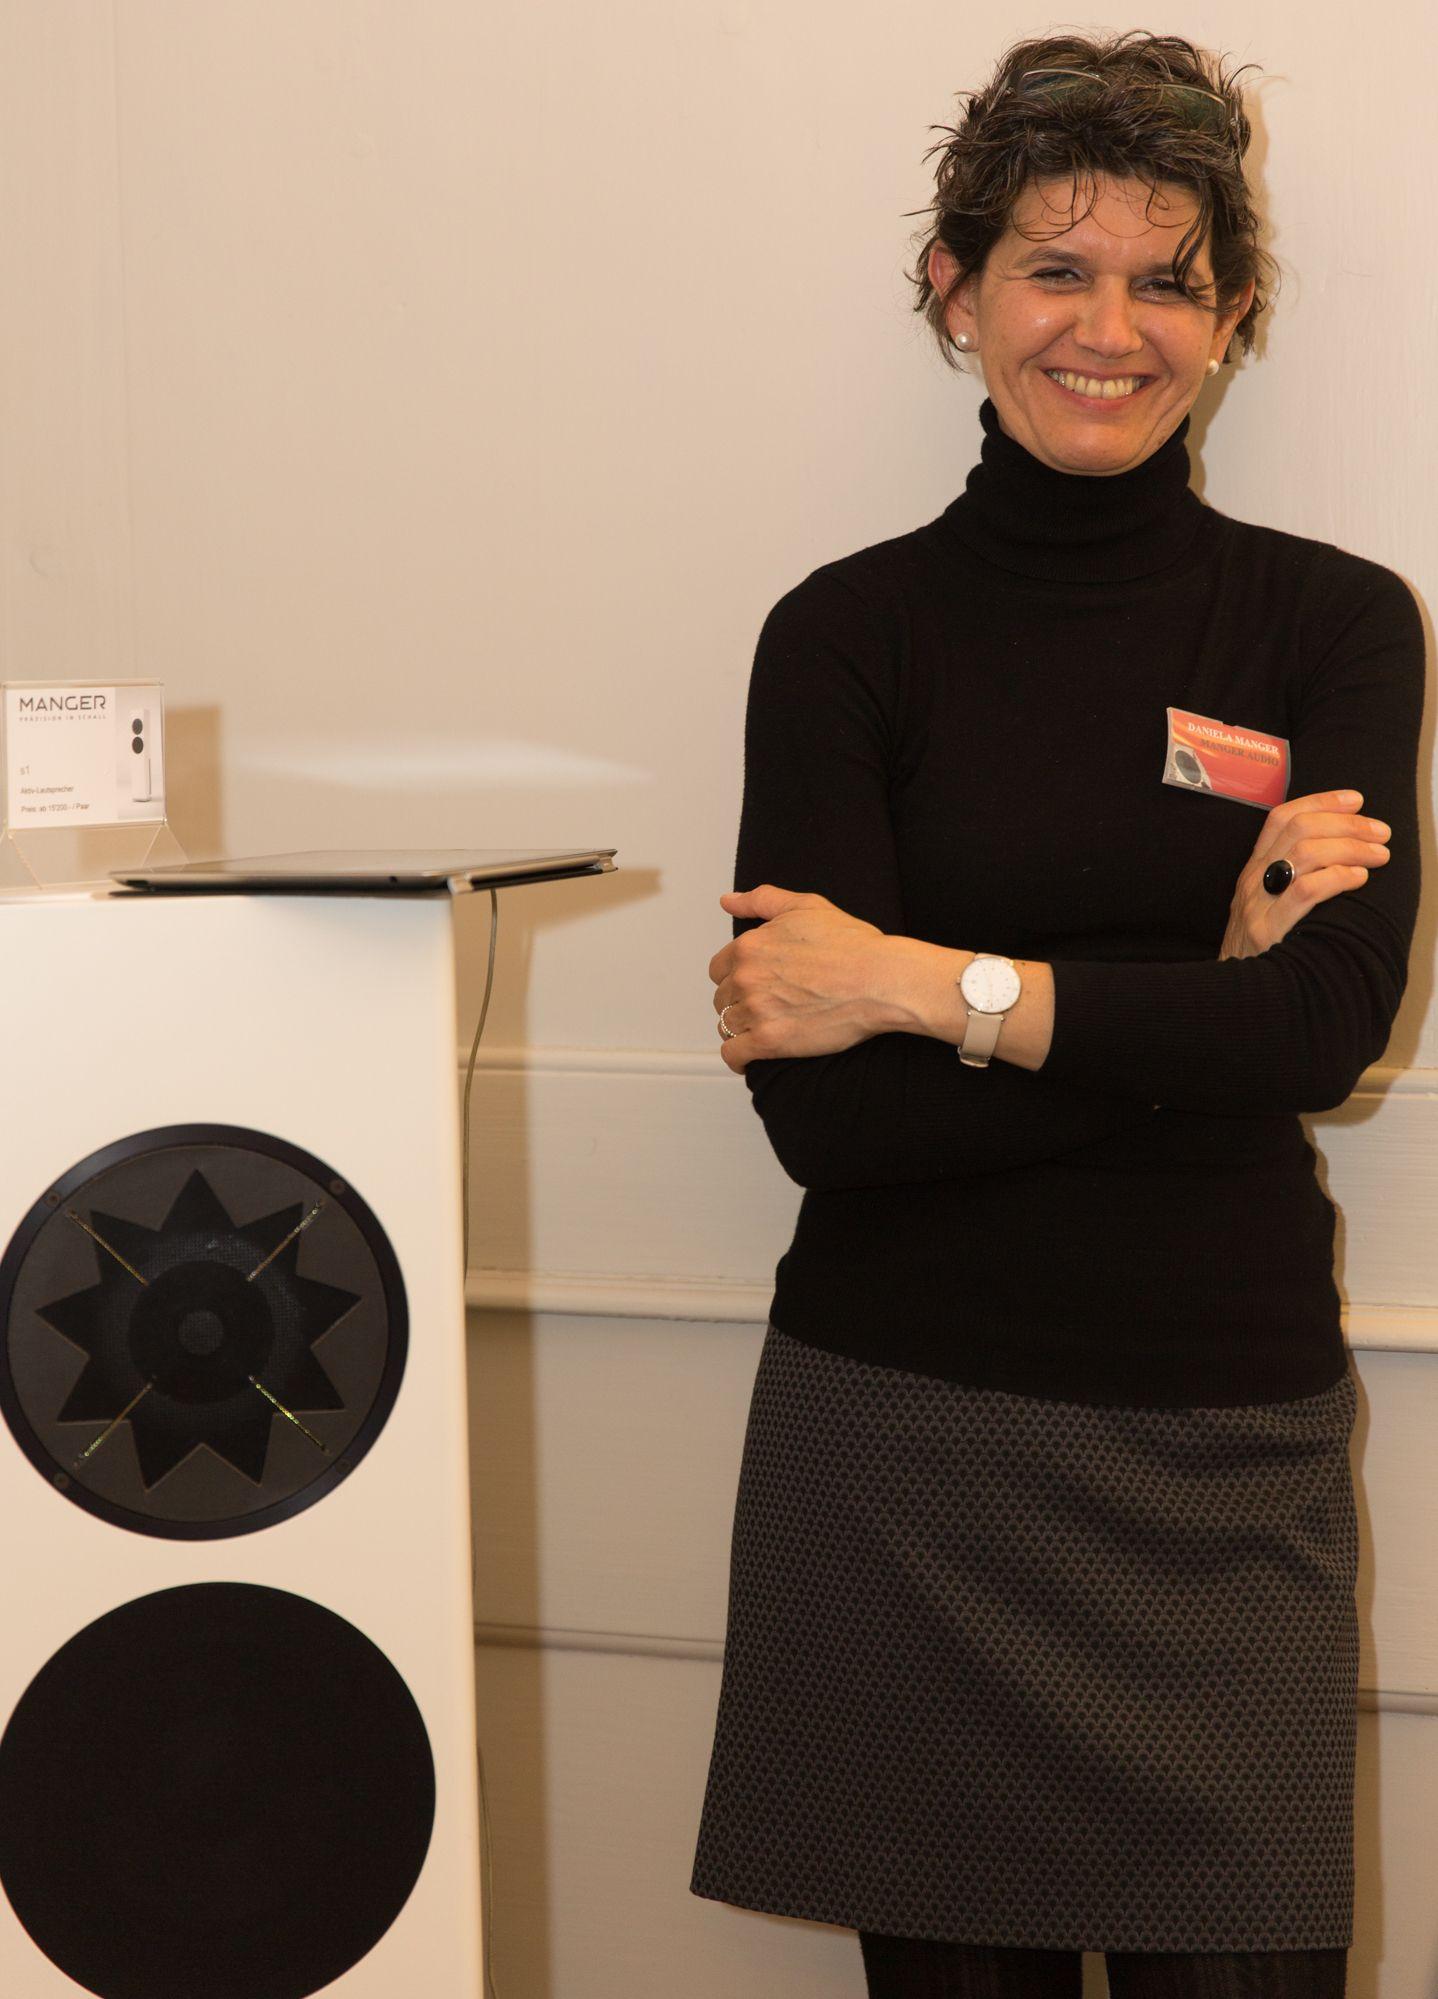 Manger Lautsprecher daniela manger beside one of his loudspeaker models p1